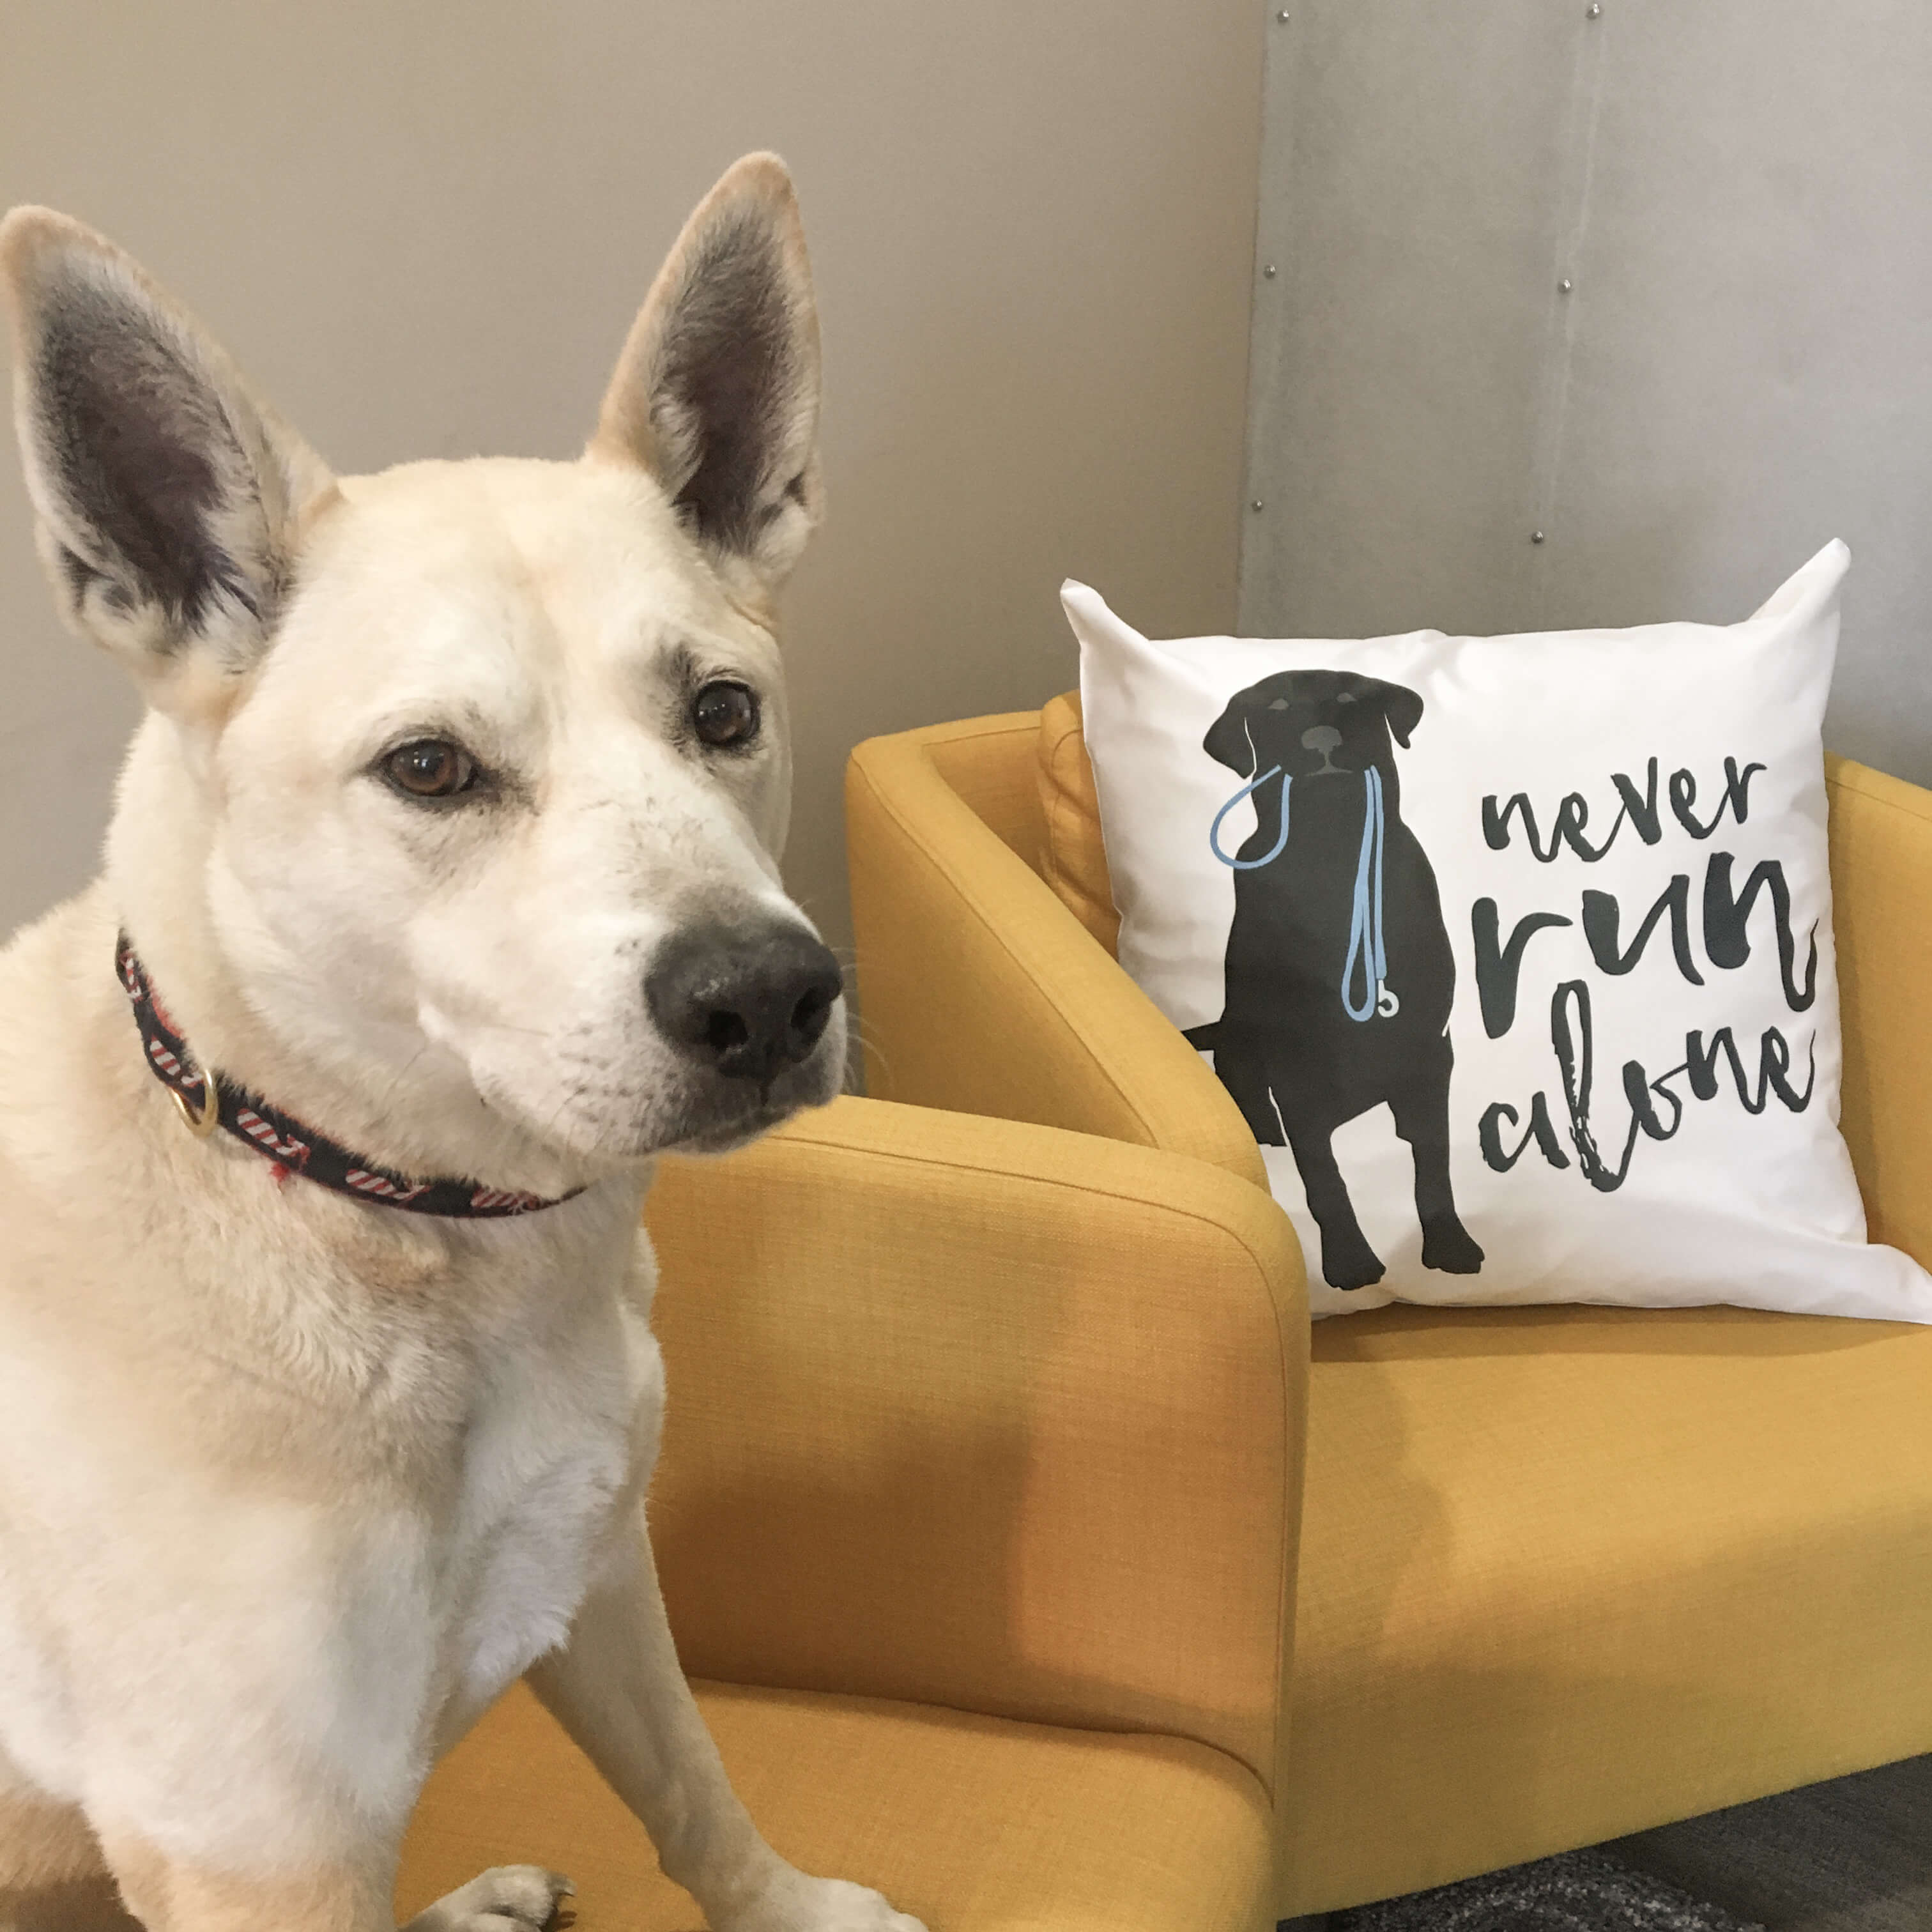 Dog with a pillow